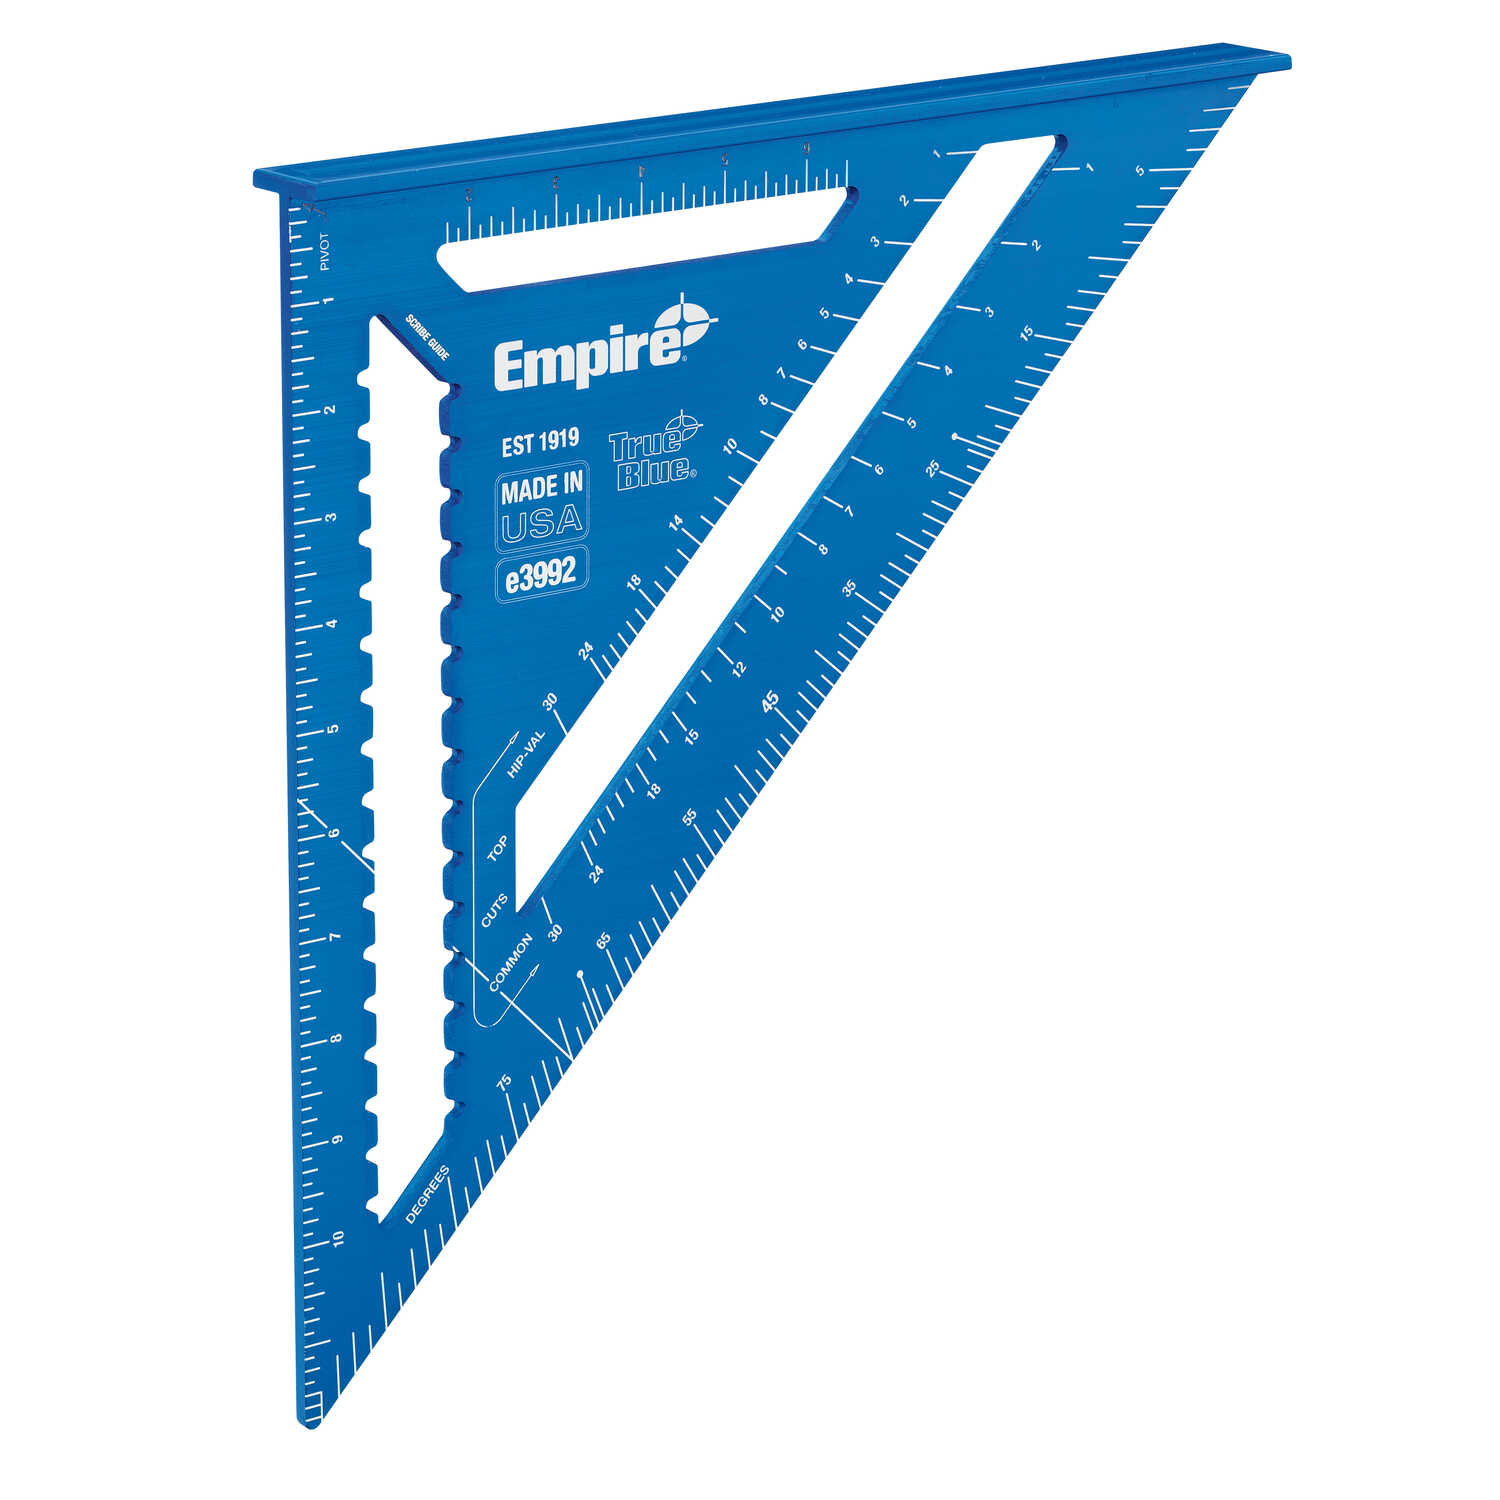 Empire  True Blue  12 in. L x 12 in. H Anodized Aluminum  Rafter Square  Blue  Laser Etched